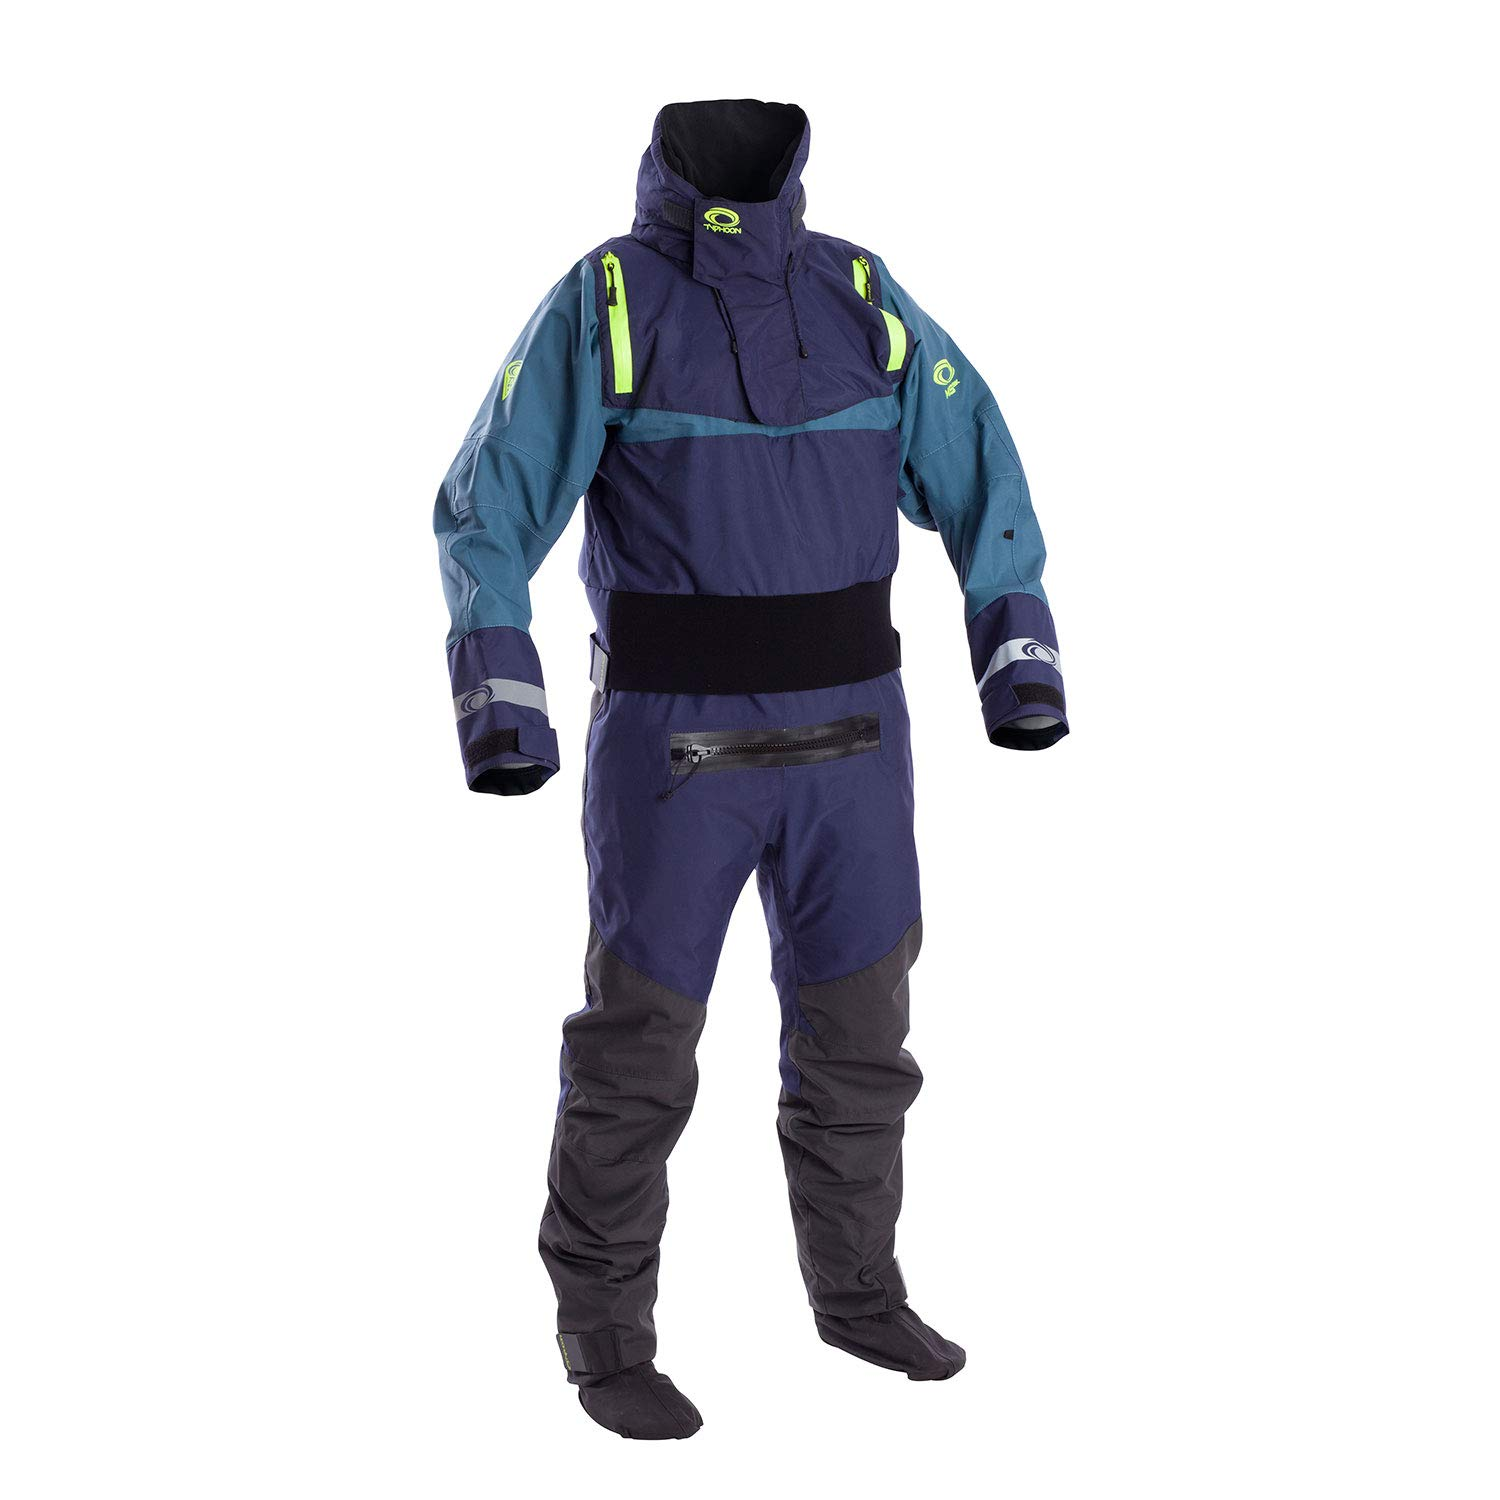 Large Typhoon Multisport SK Drysuit with Con Zip 2019  Teal Green